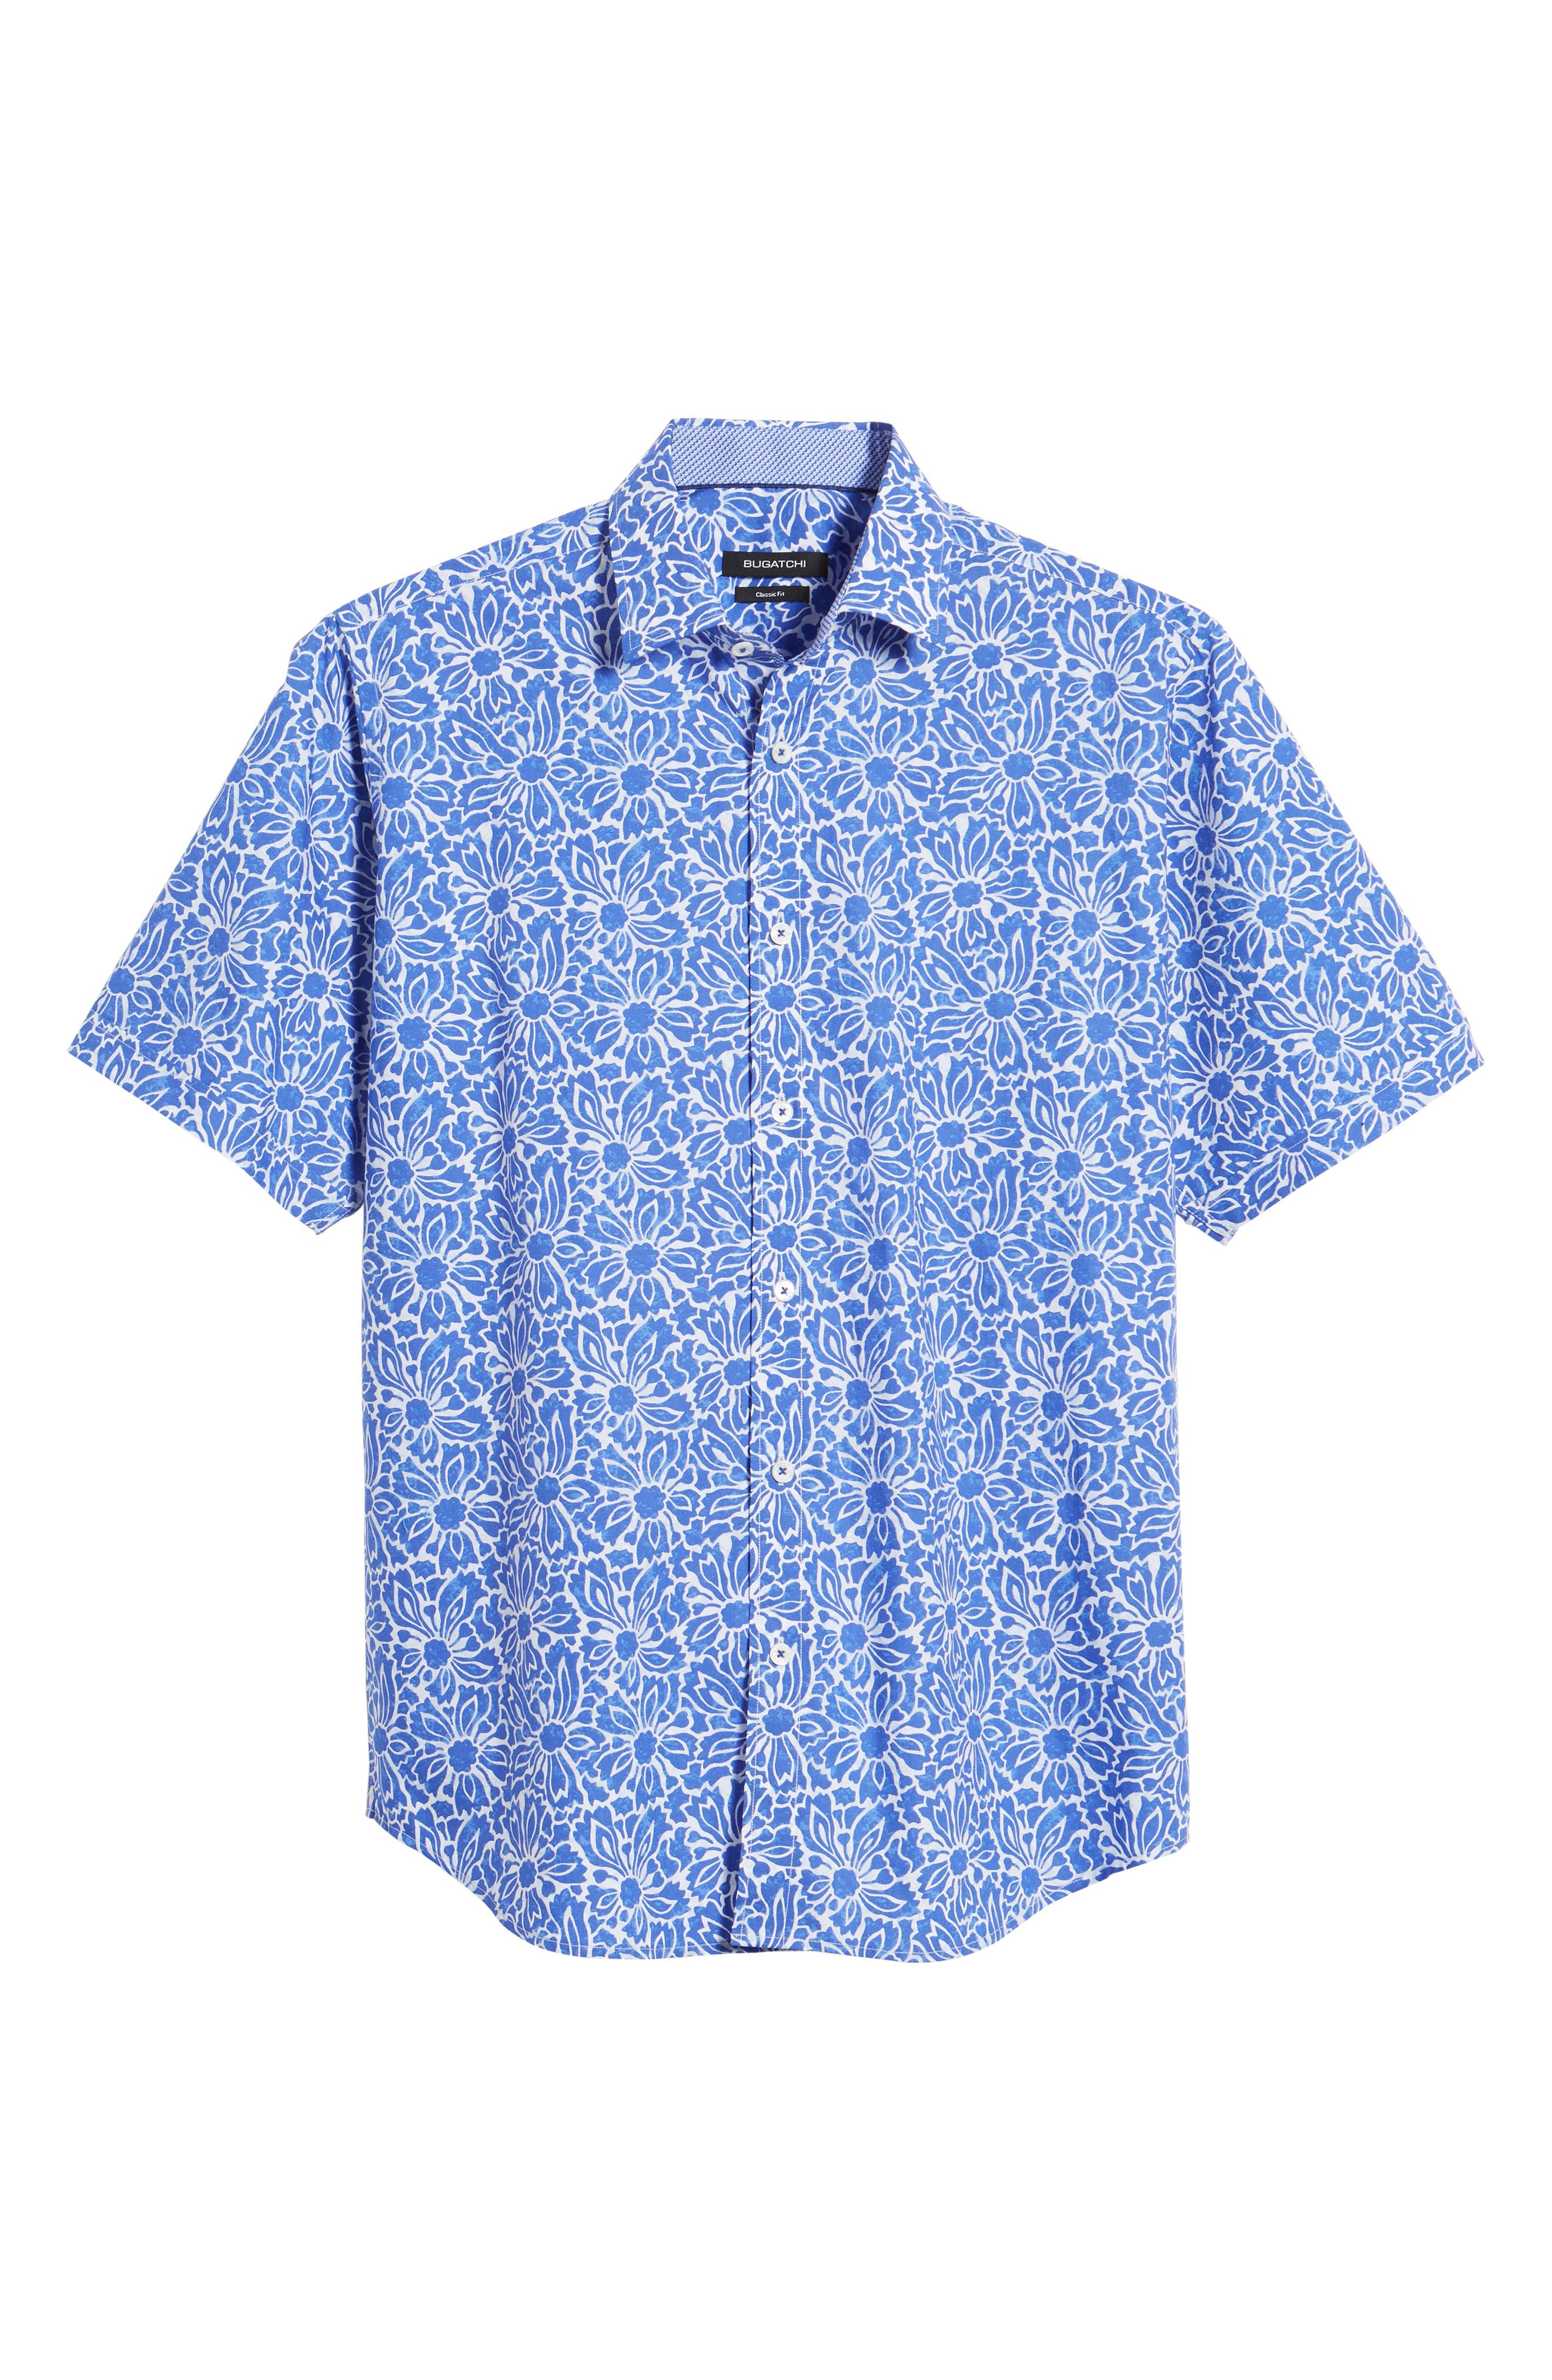 Classic Fit Floral Sport Shirt,                             Alternate thumbnail 6, color,                             Royal